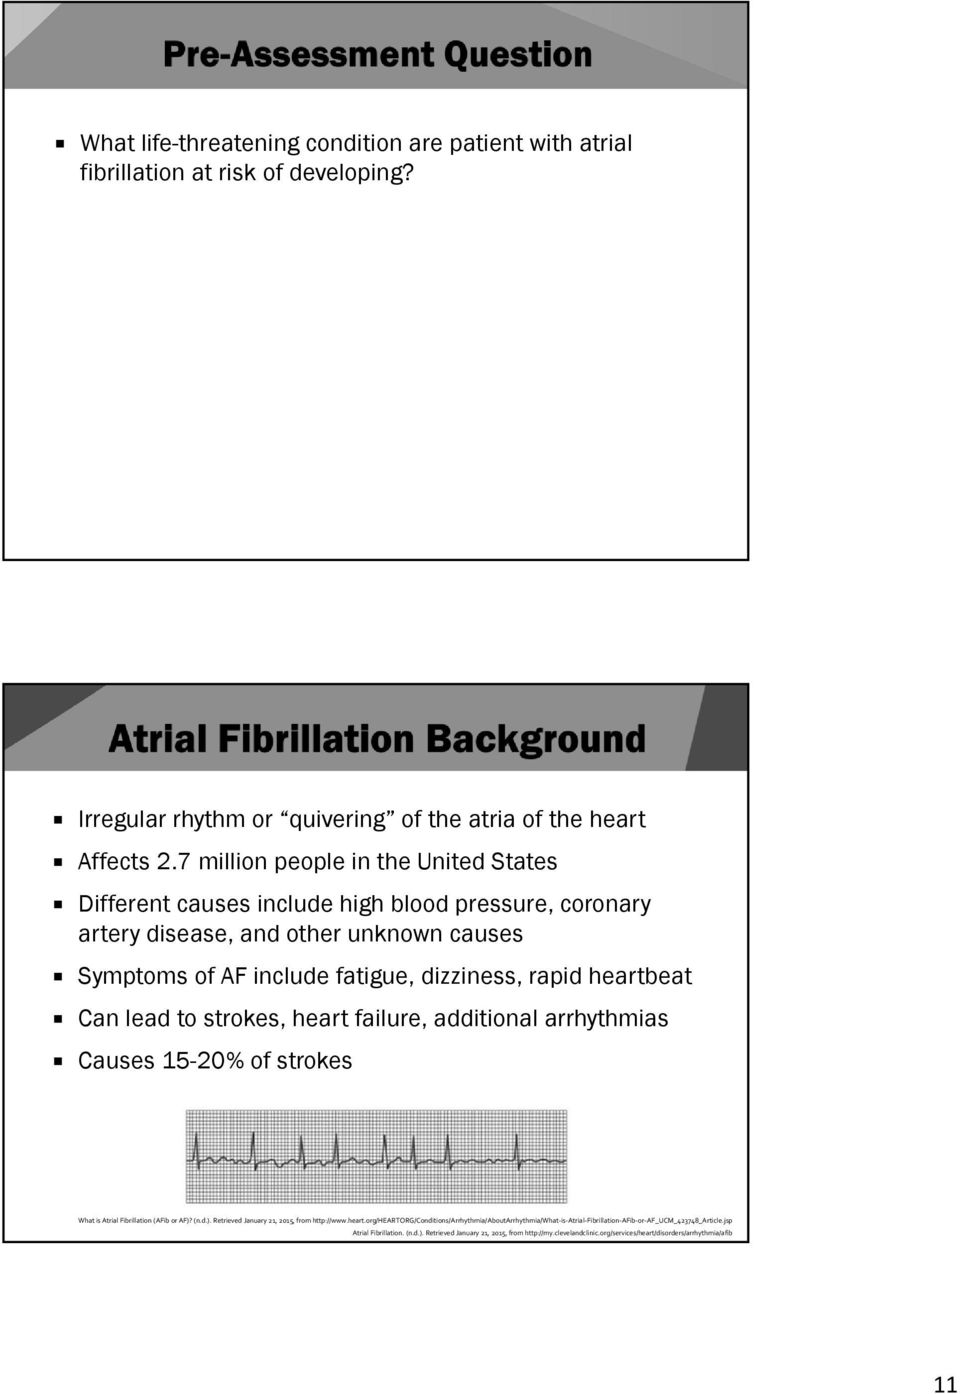 Can lead to strokes, heart failure, additional arrhythmias Causes 15-20% of strokes What is Atrial Fibrillation (AFib or AF)? (n.d.). Retrieved January 21, 2015, from http://www.heart.org/heartorg/conditions/arrhythmia/aboutarrhythmia/what is Atrial Fibrillation AFib or AF_UCM_423748_Article.